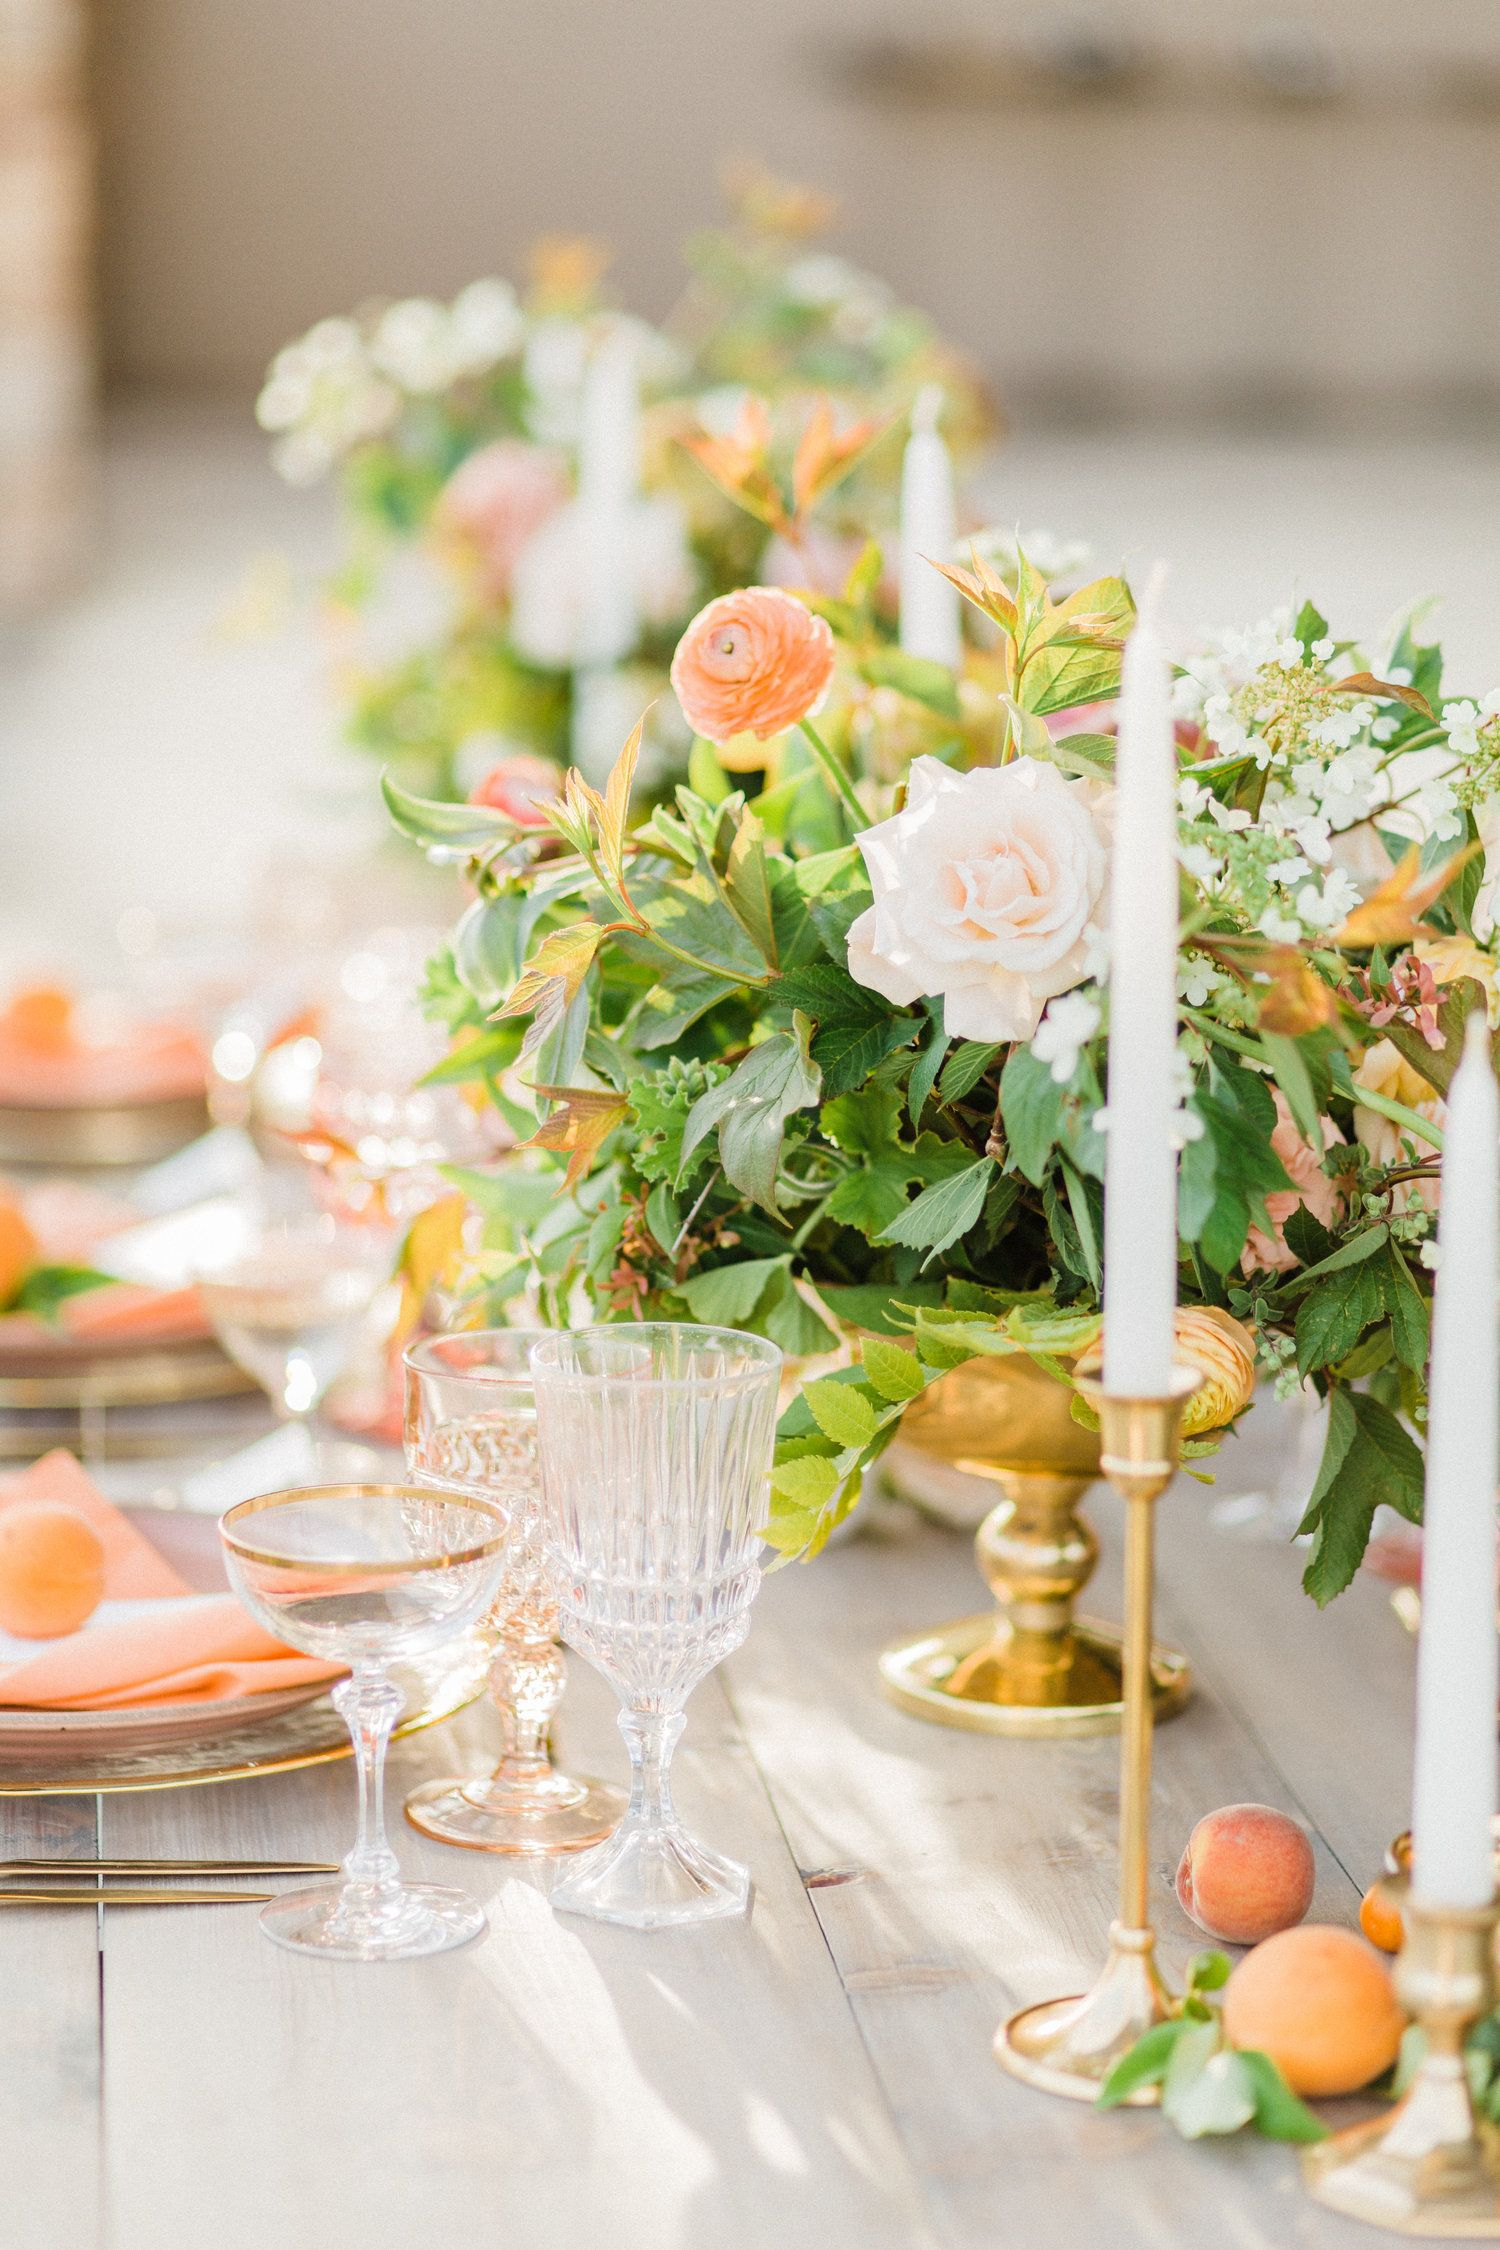 Loving this citrus wedding inspiration from a wine country wedding